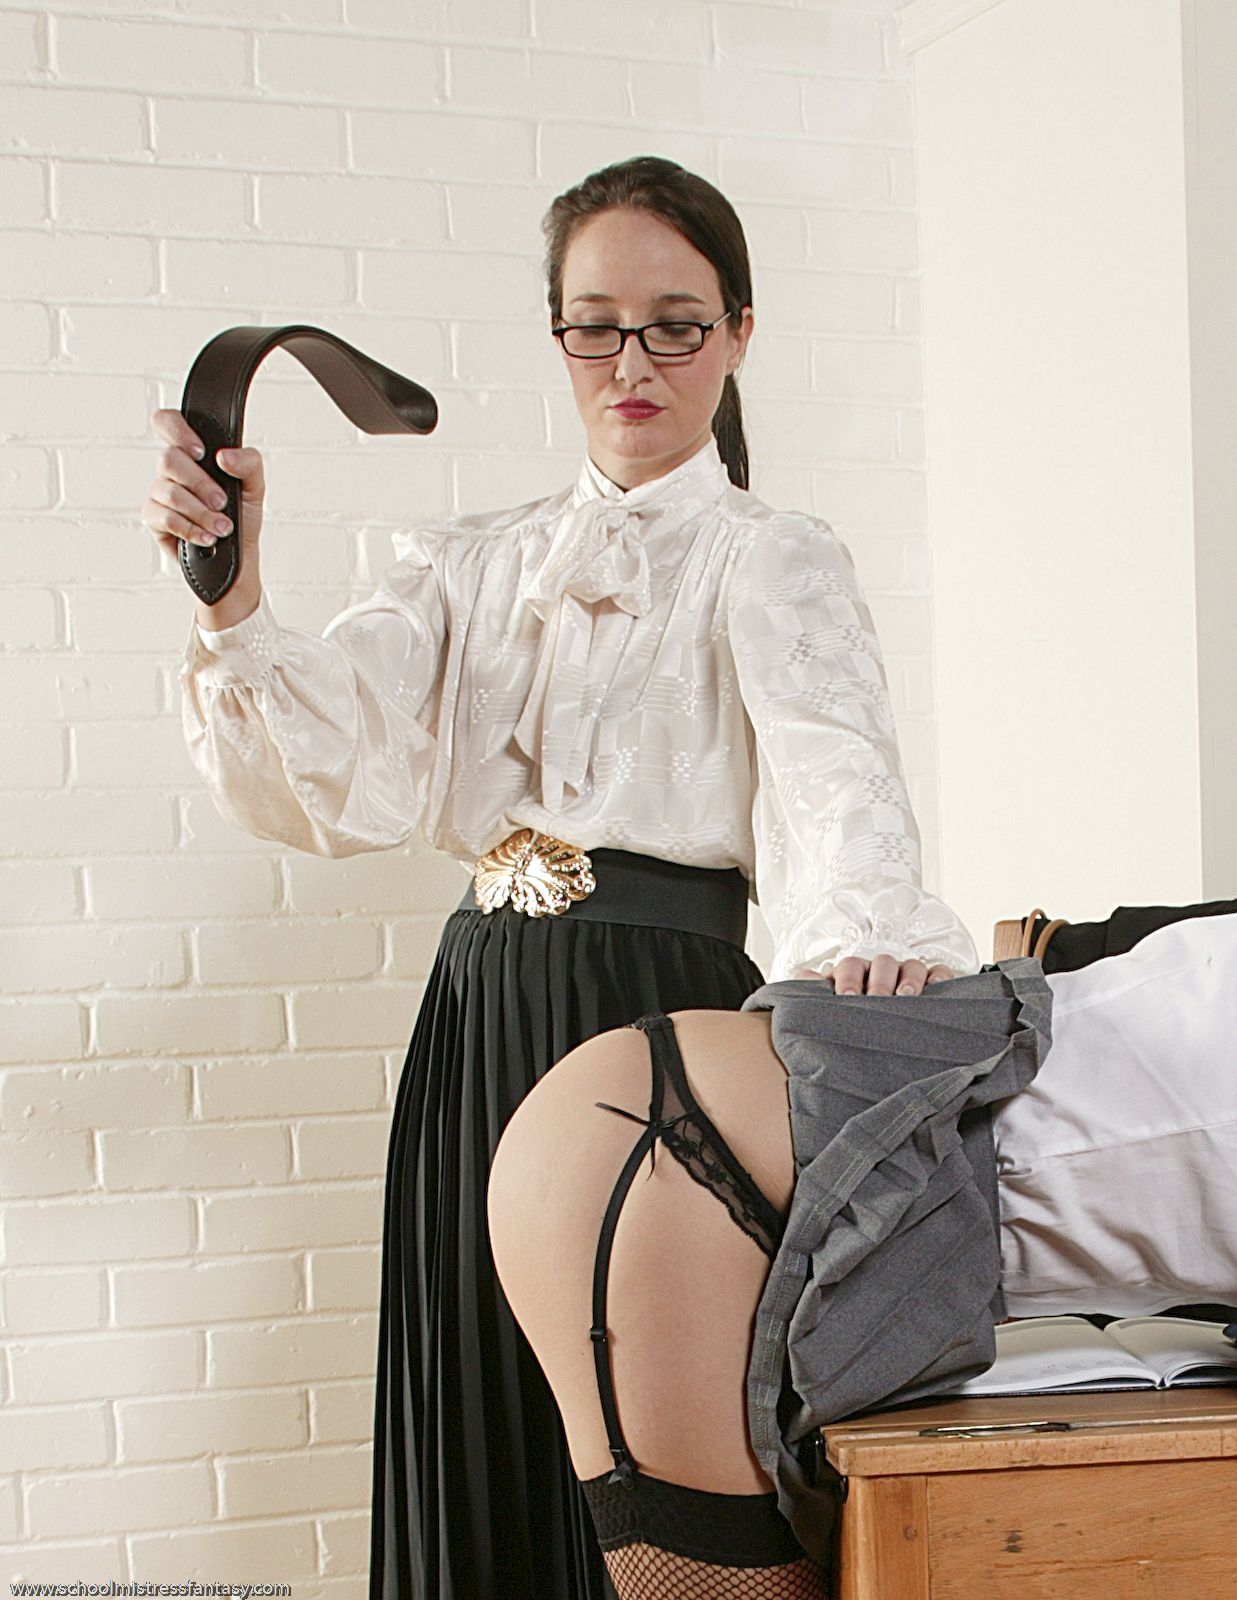 Spank him governess bare cane